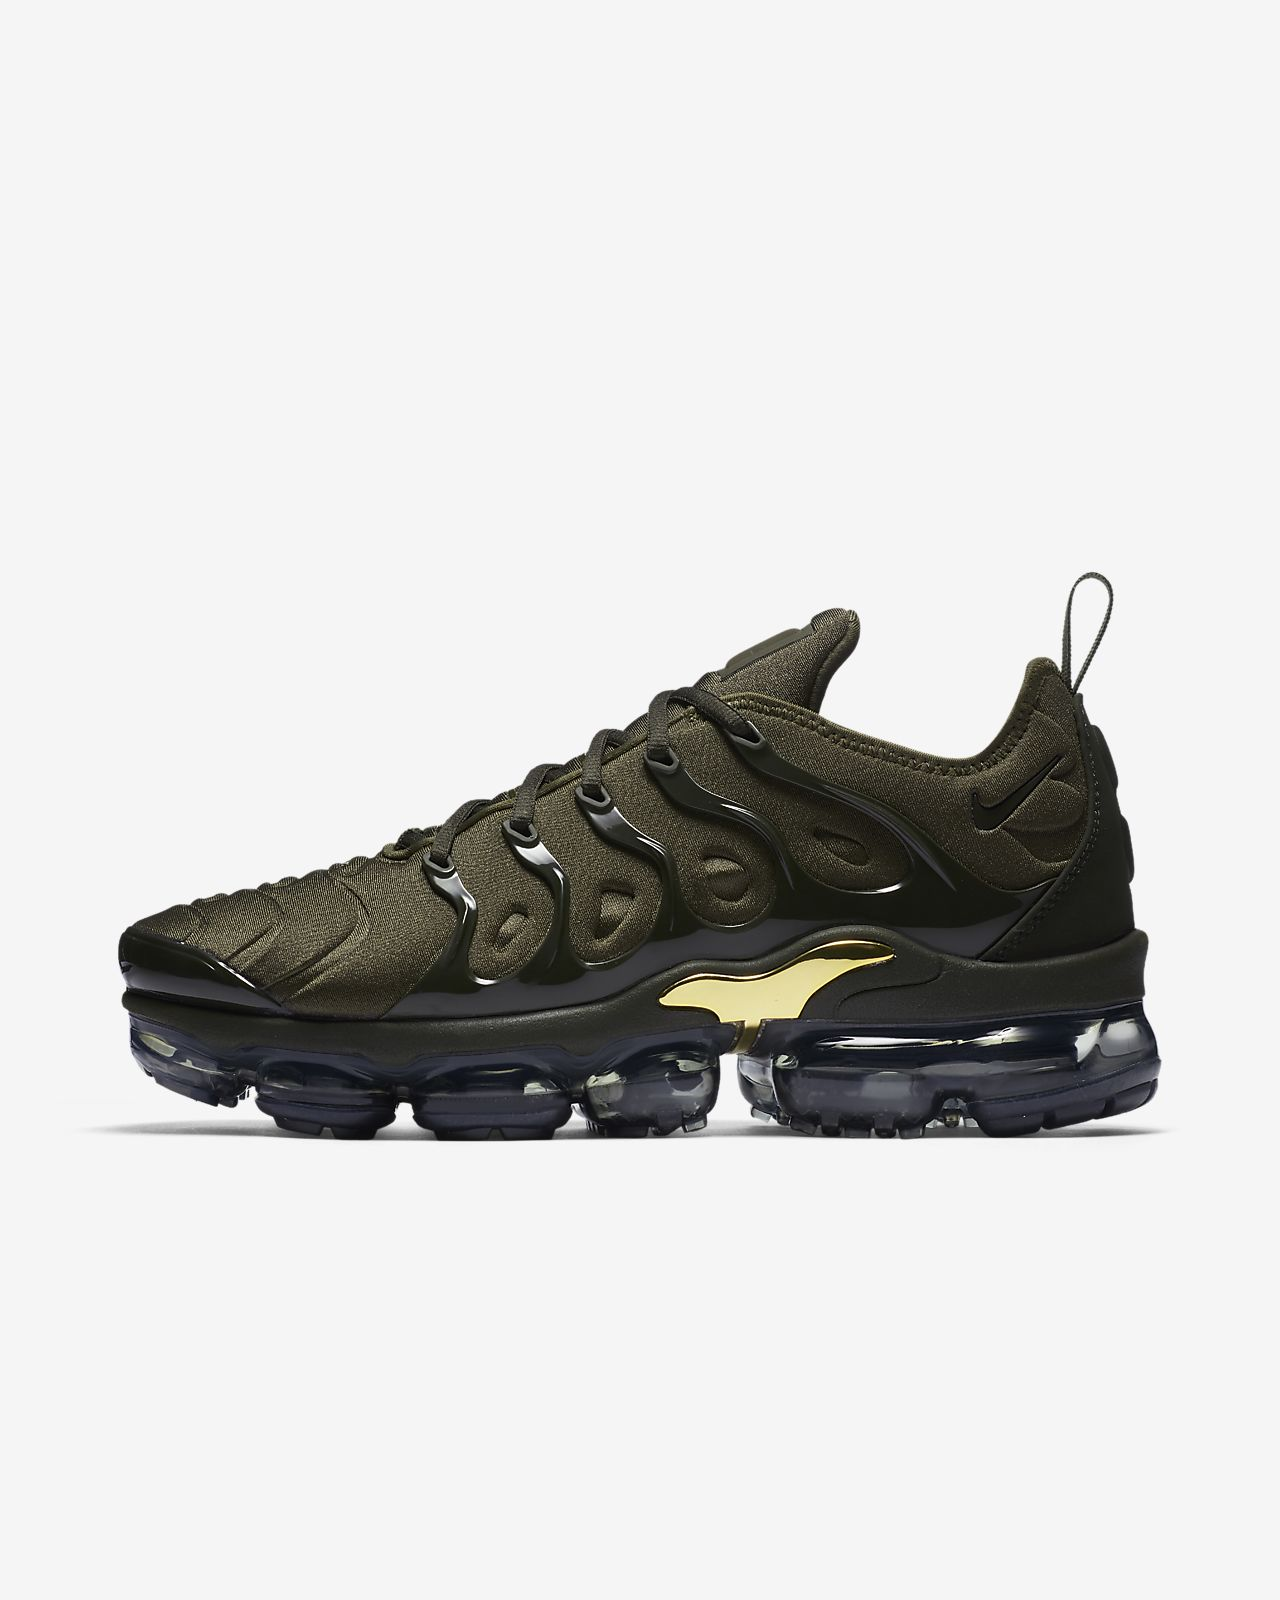 new product 51cfa bce74 Mens Shoe. Nike Air VaporMax Plus